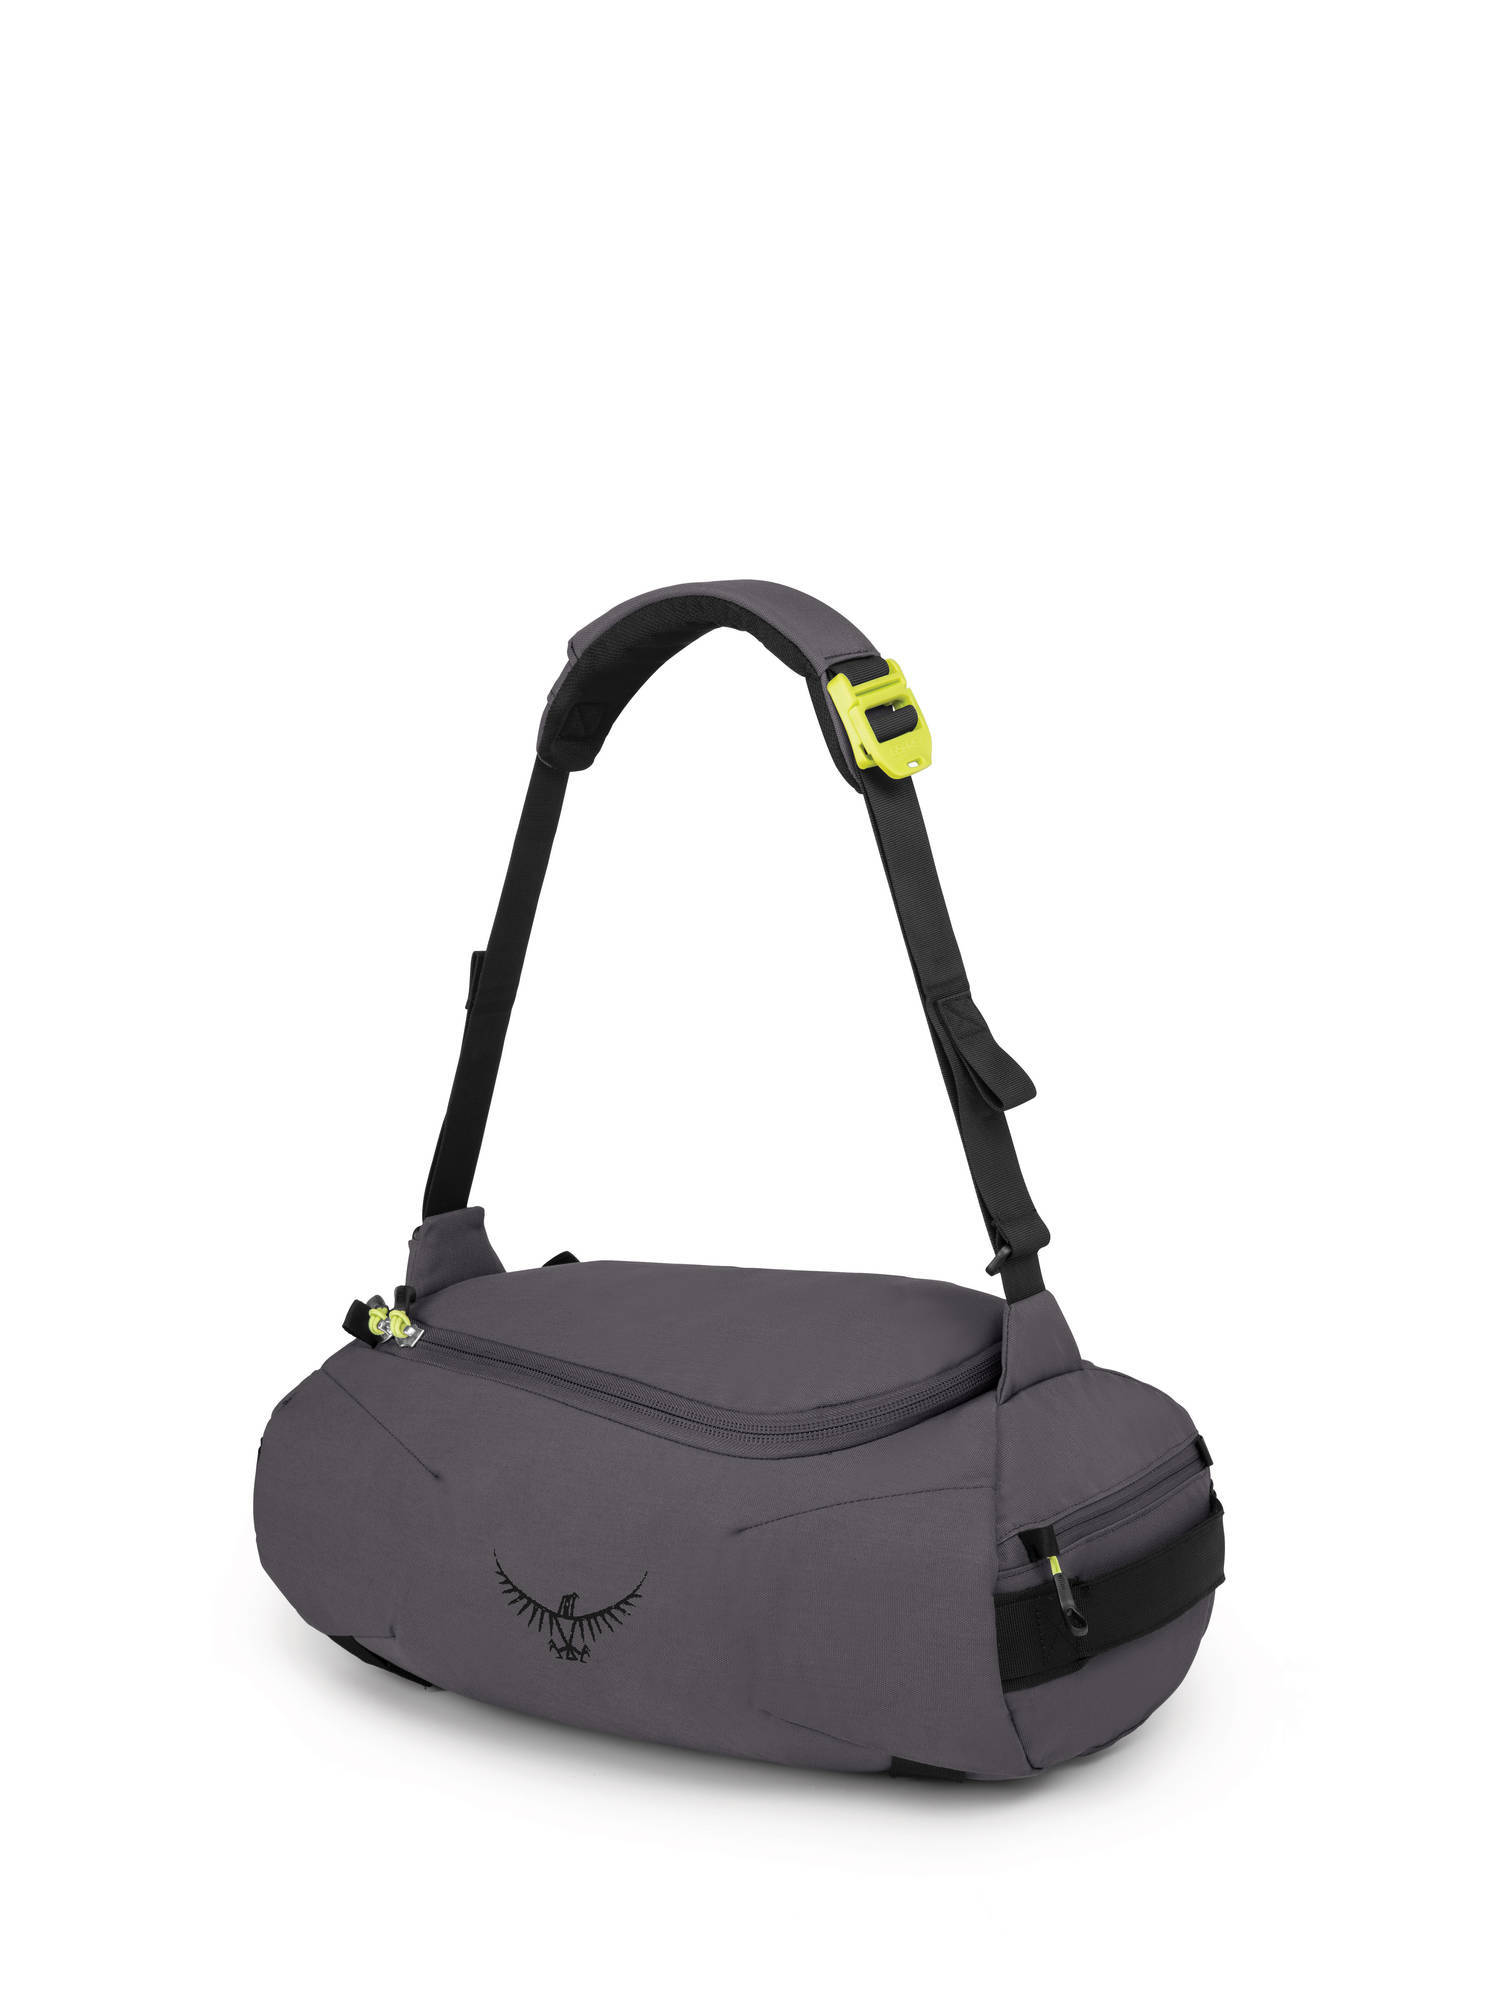 Сумки-рюкзаки Сумка Osprey Trillium 30 Duffel Granite Grey Trillium_30_F17_Side_Granite_Grey_web.jpg